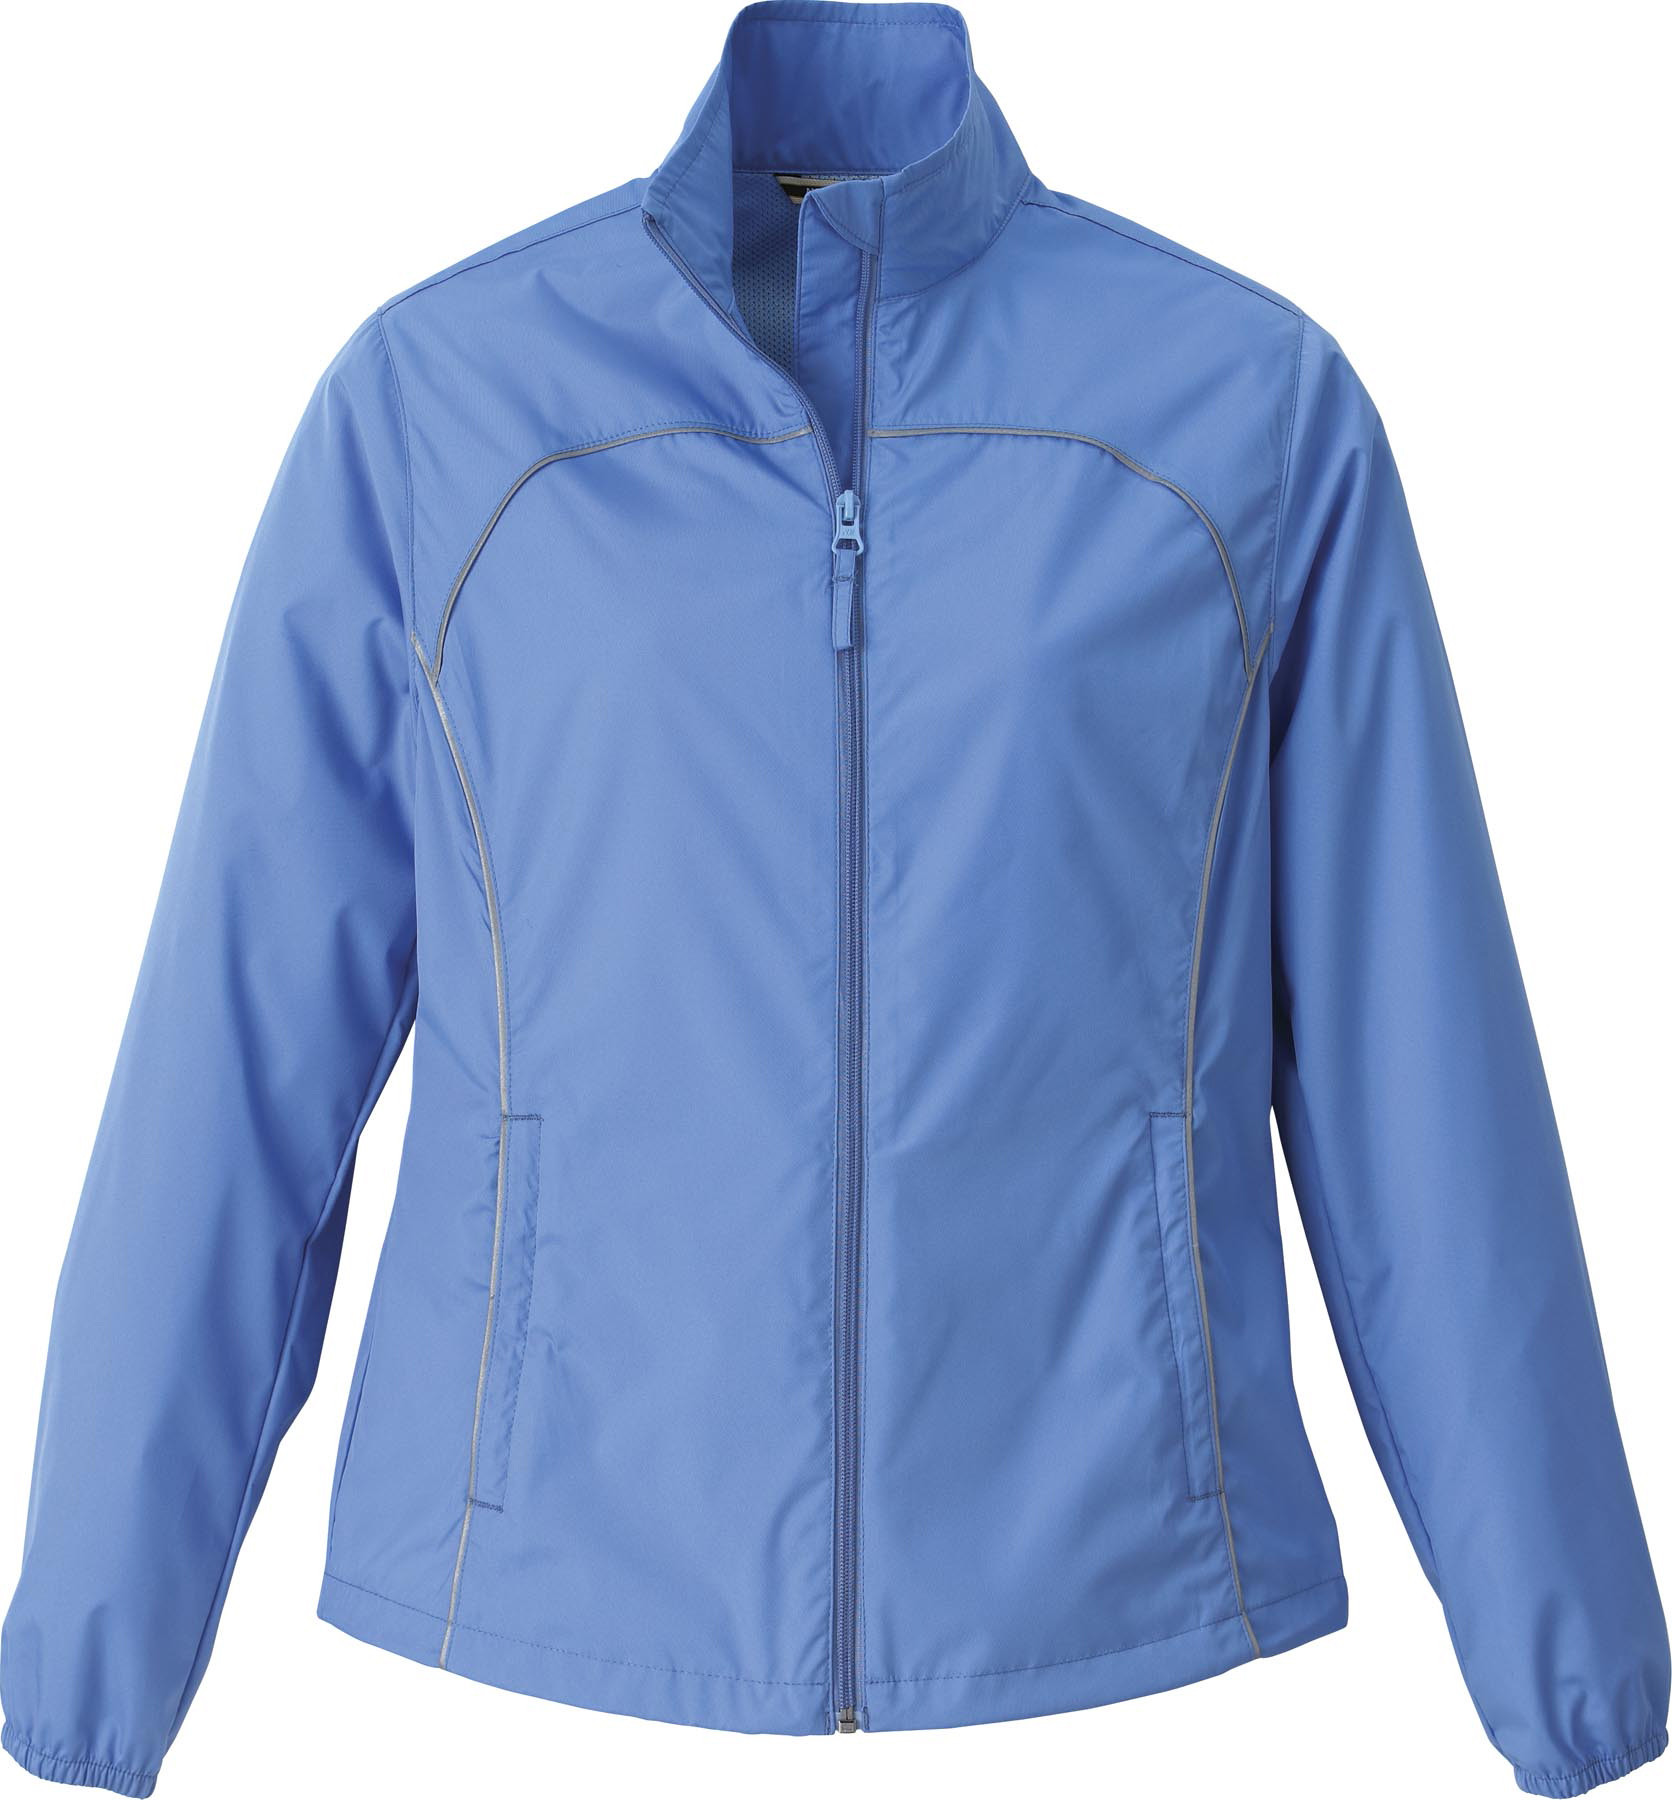 Ash City e.c.o Outerwear 78058 - Ladies' Lightweight ...